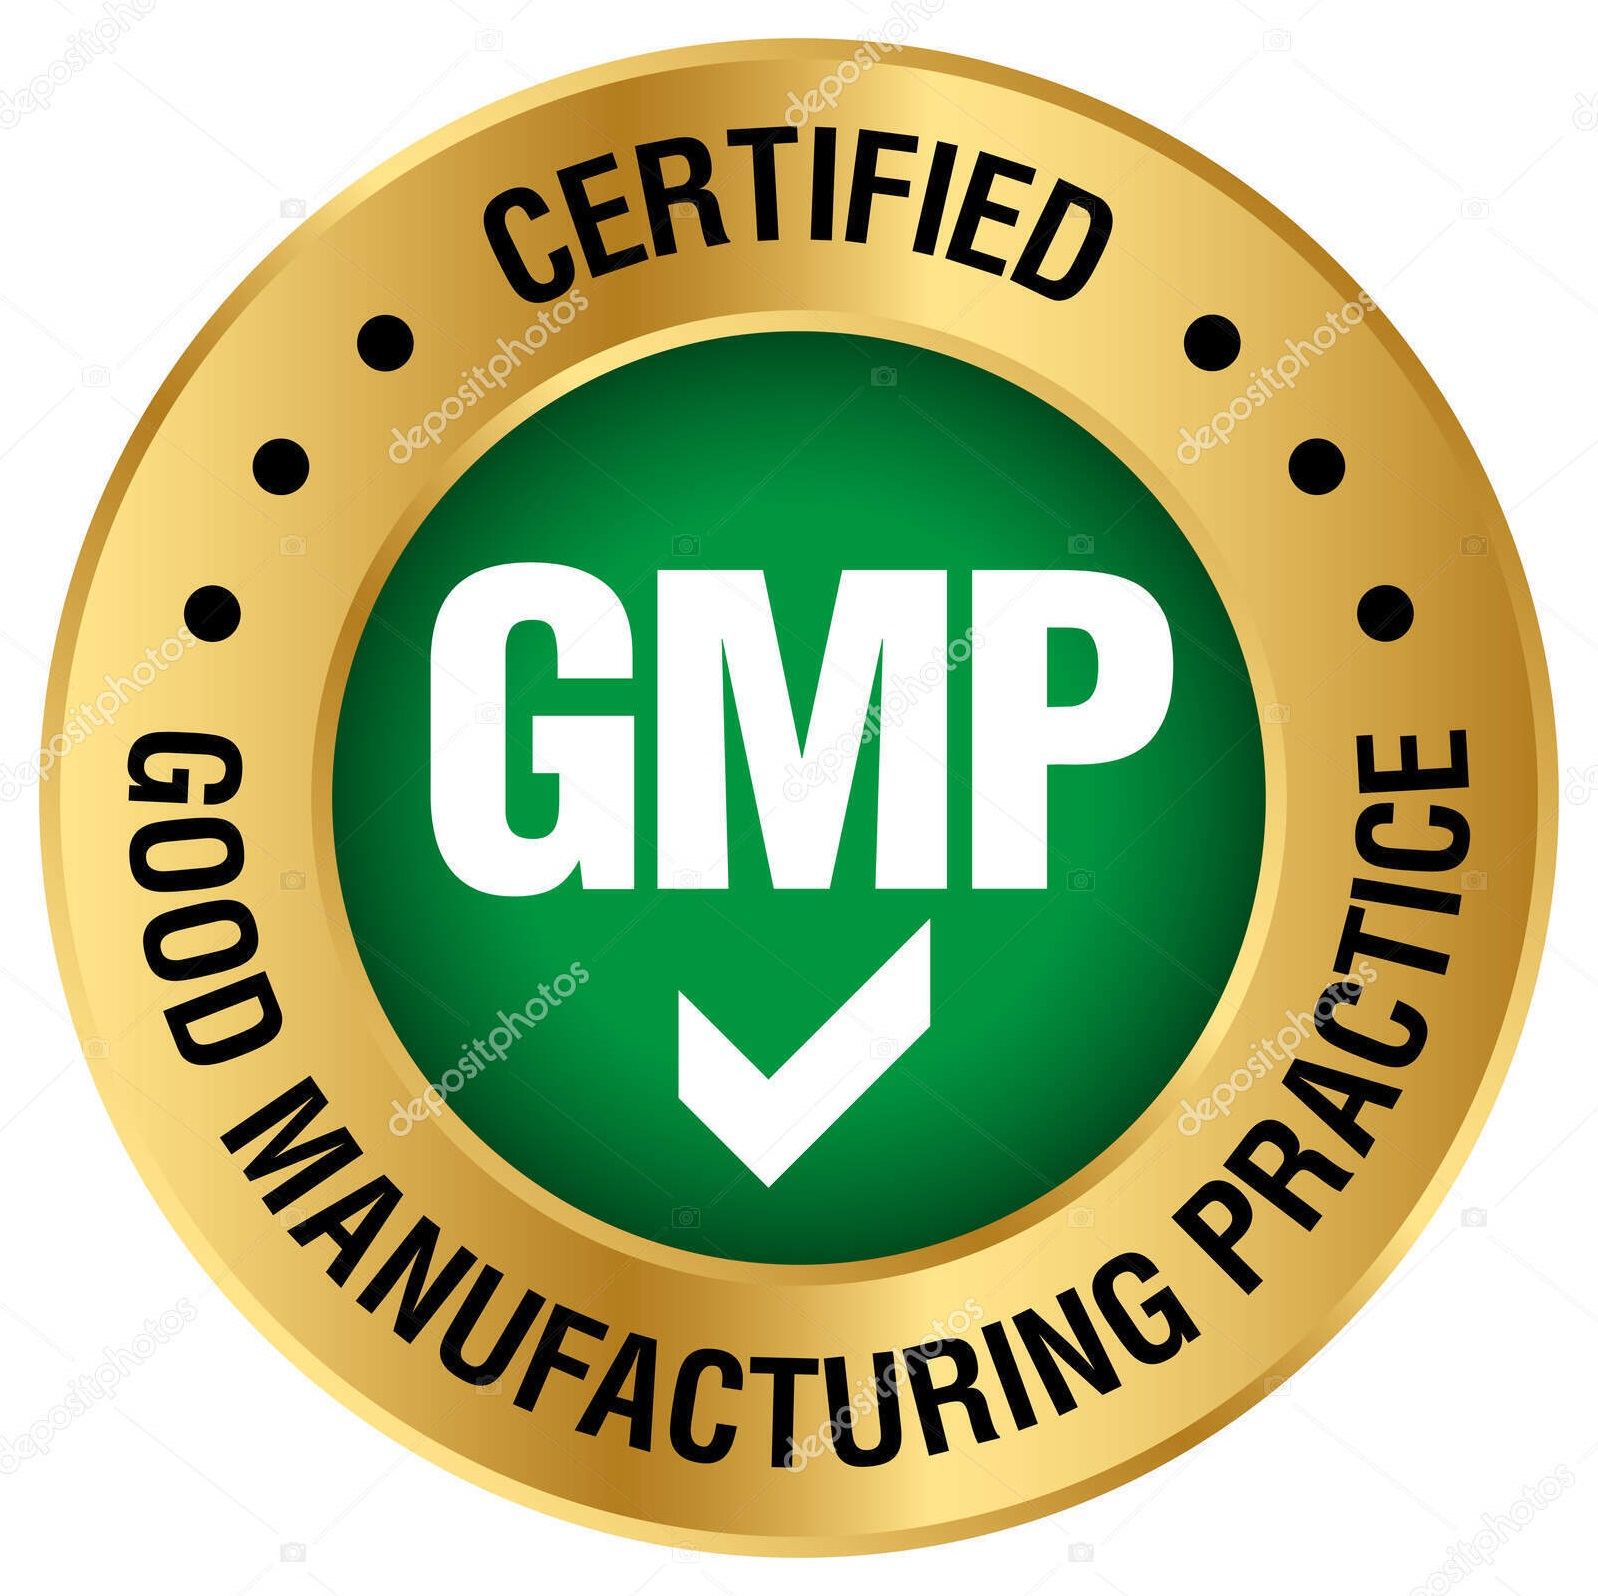 depositphotos_355350030-stock-illustration-gmp-good-manufacturing-practice-certified-1